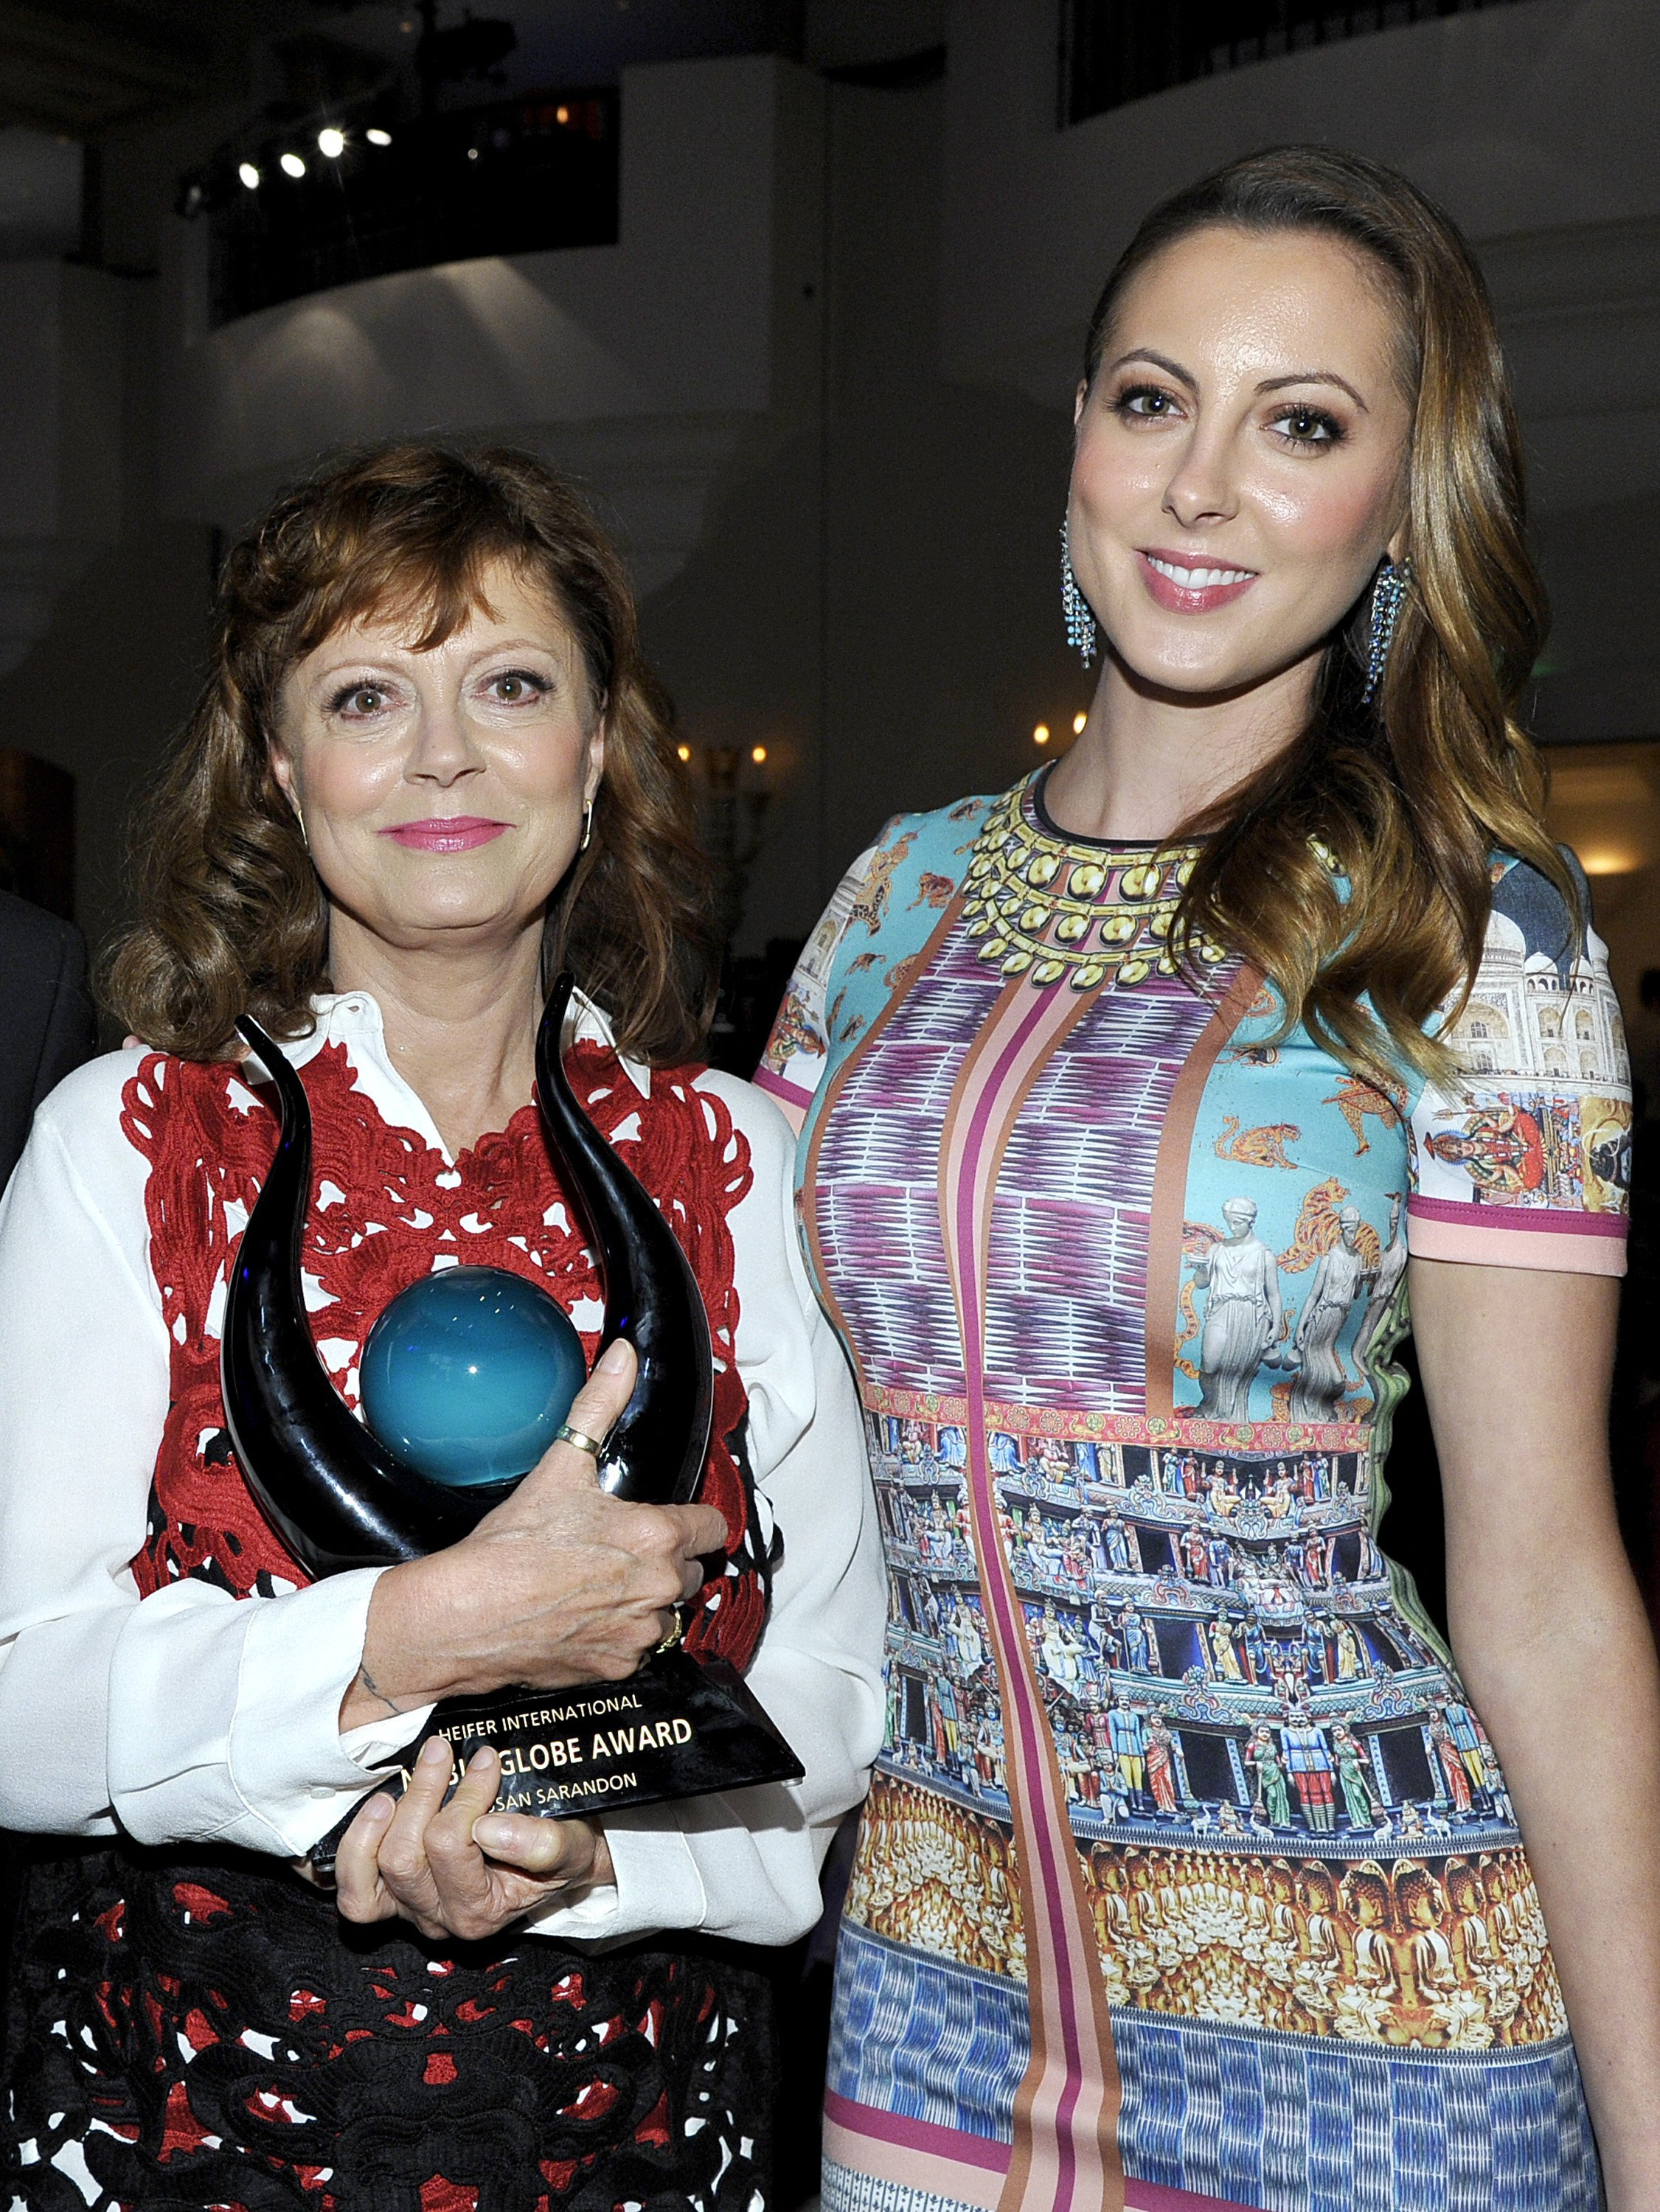 """Susan Sarandon and Eva Amurri Martino at 2nd Annual """"Beyond Hunger: A Place at the Table"""" to Help End World Hunger and Poverty on September 19, 2013 